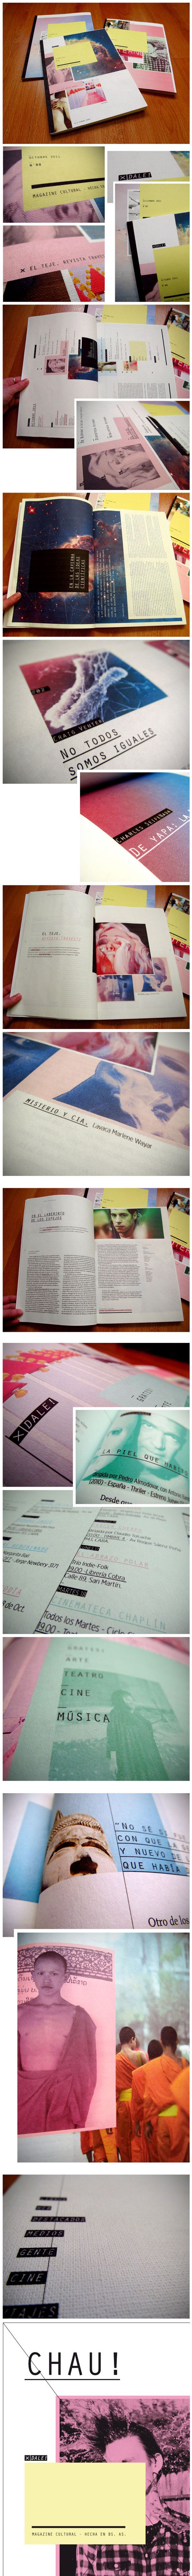 DALE! magazine cultural by Florencia Buraschi, via Behance #layout #magazine #pulication